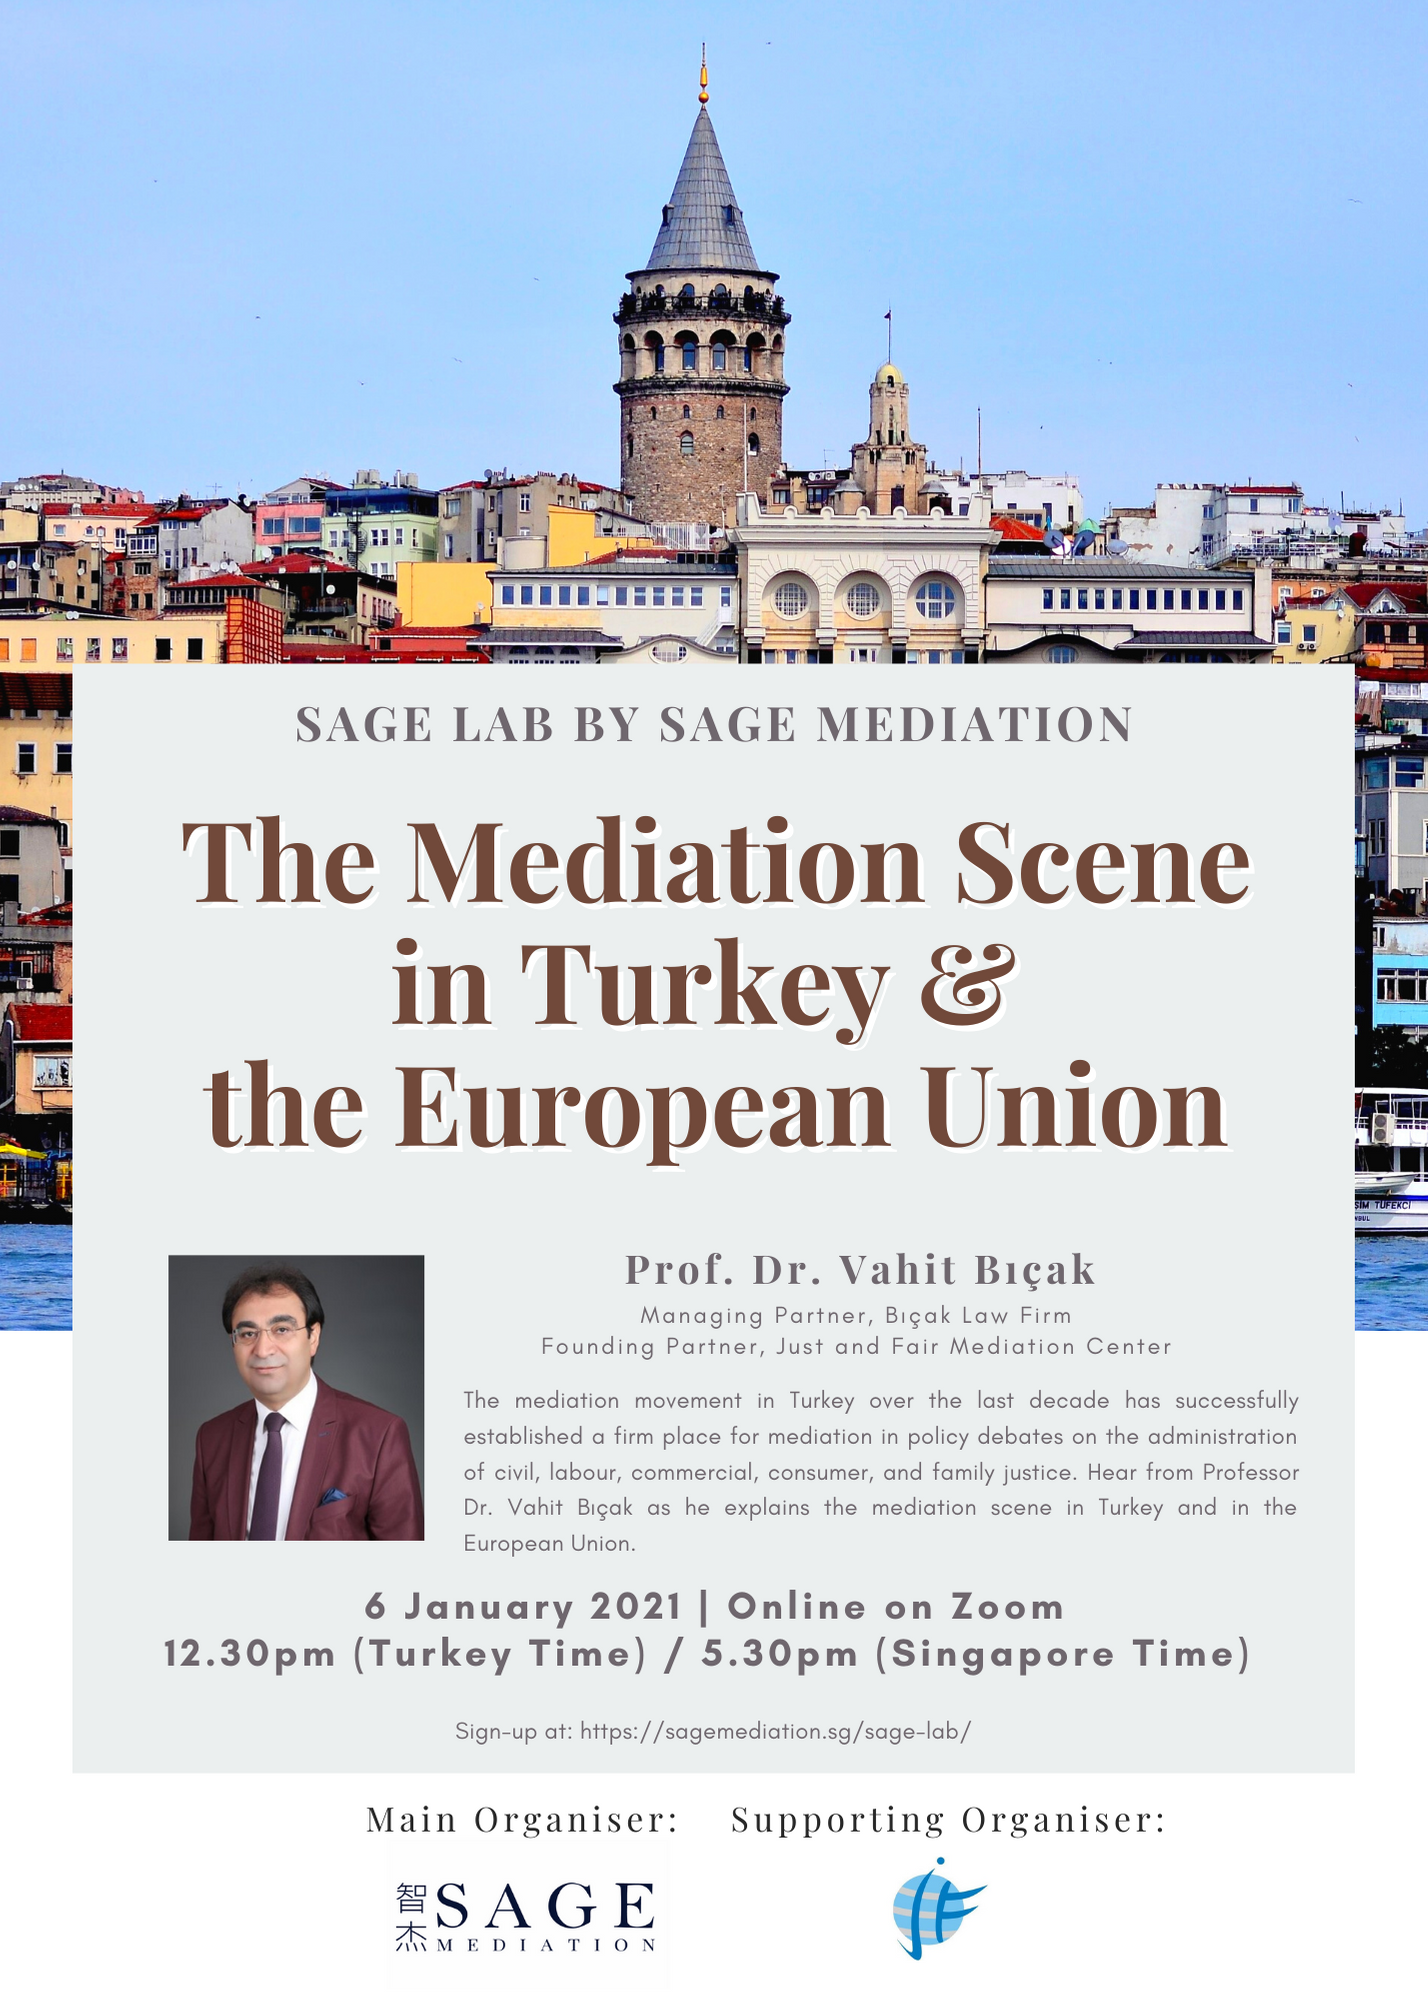 Mediation Scene in Turkey